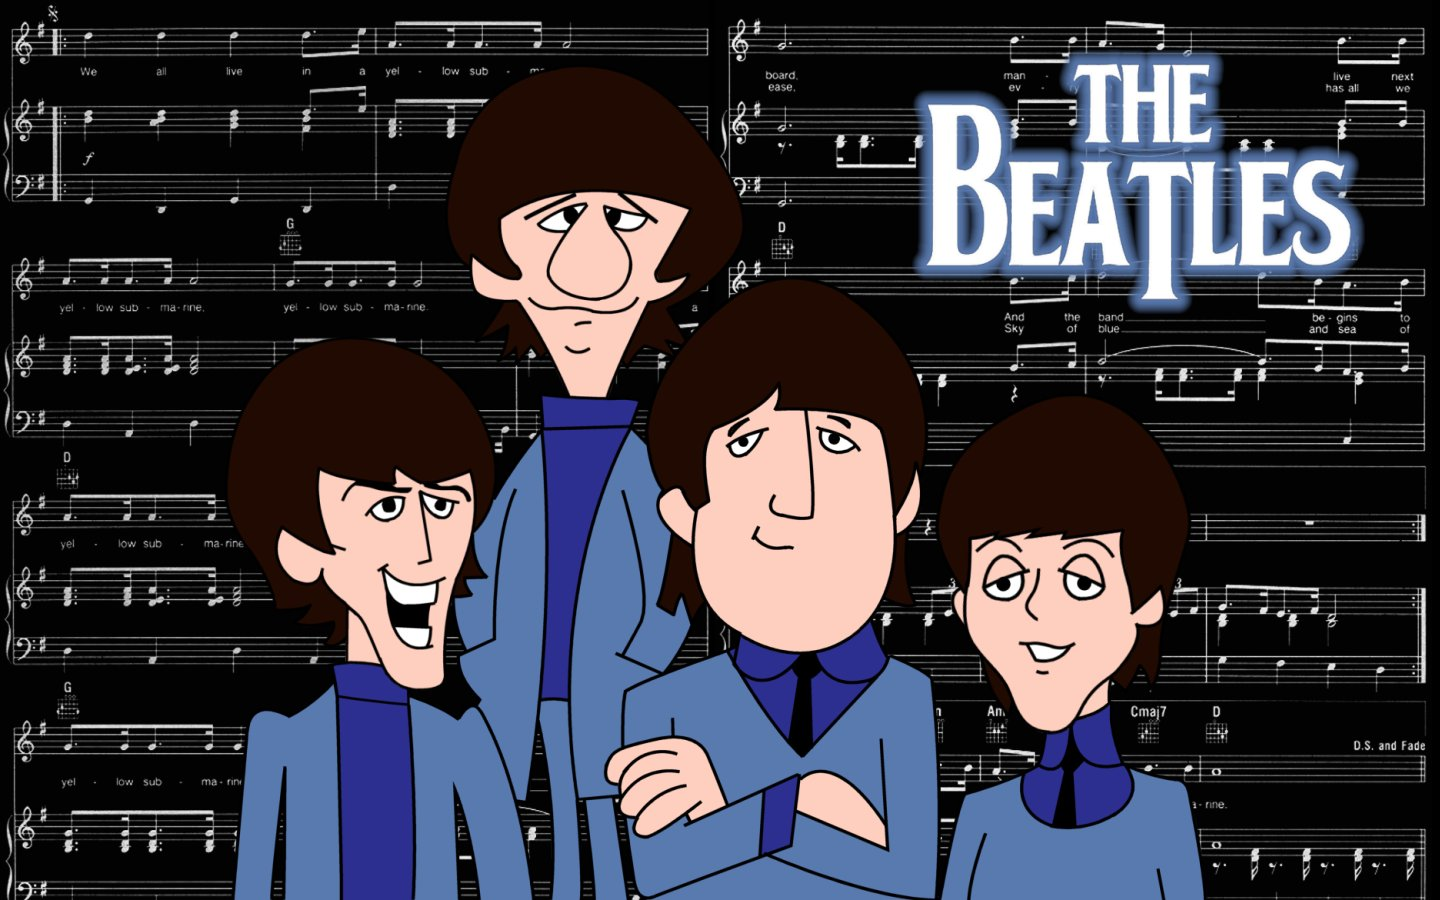 http://www.startrekanimated.com/ys_car_beatles_wall11.jpg